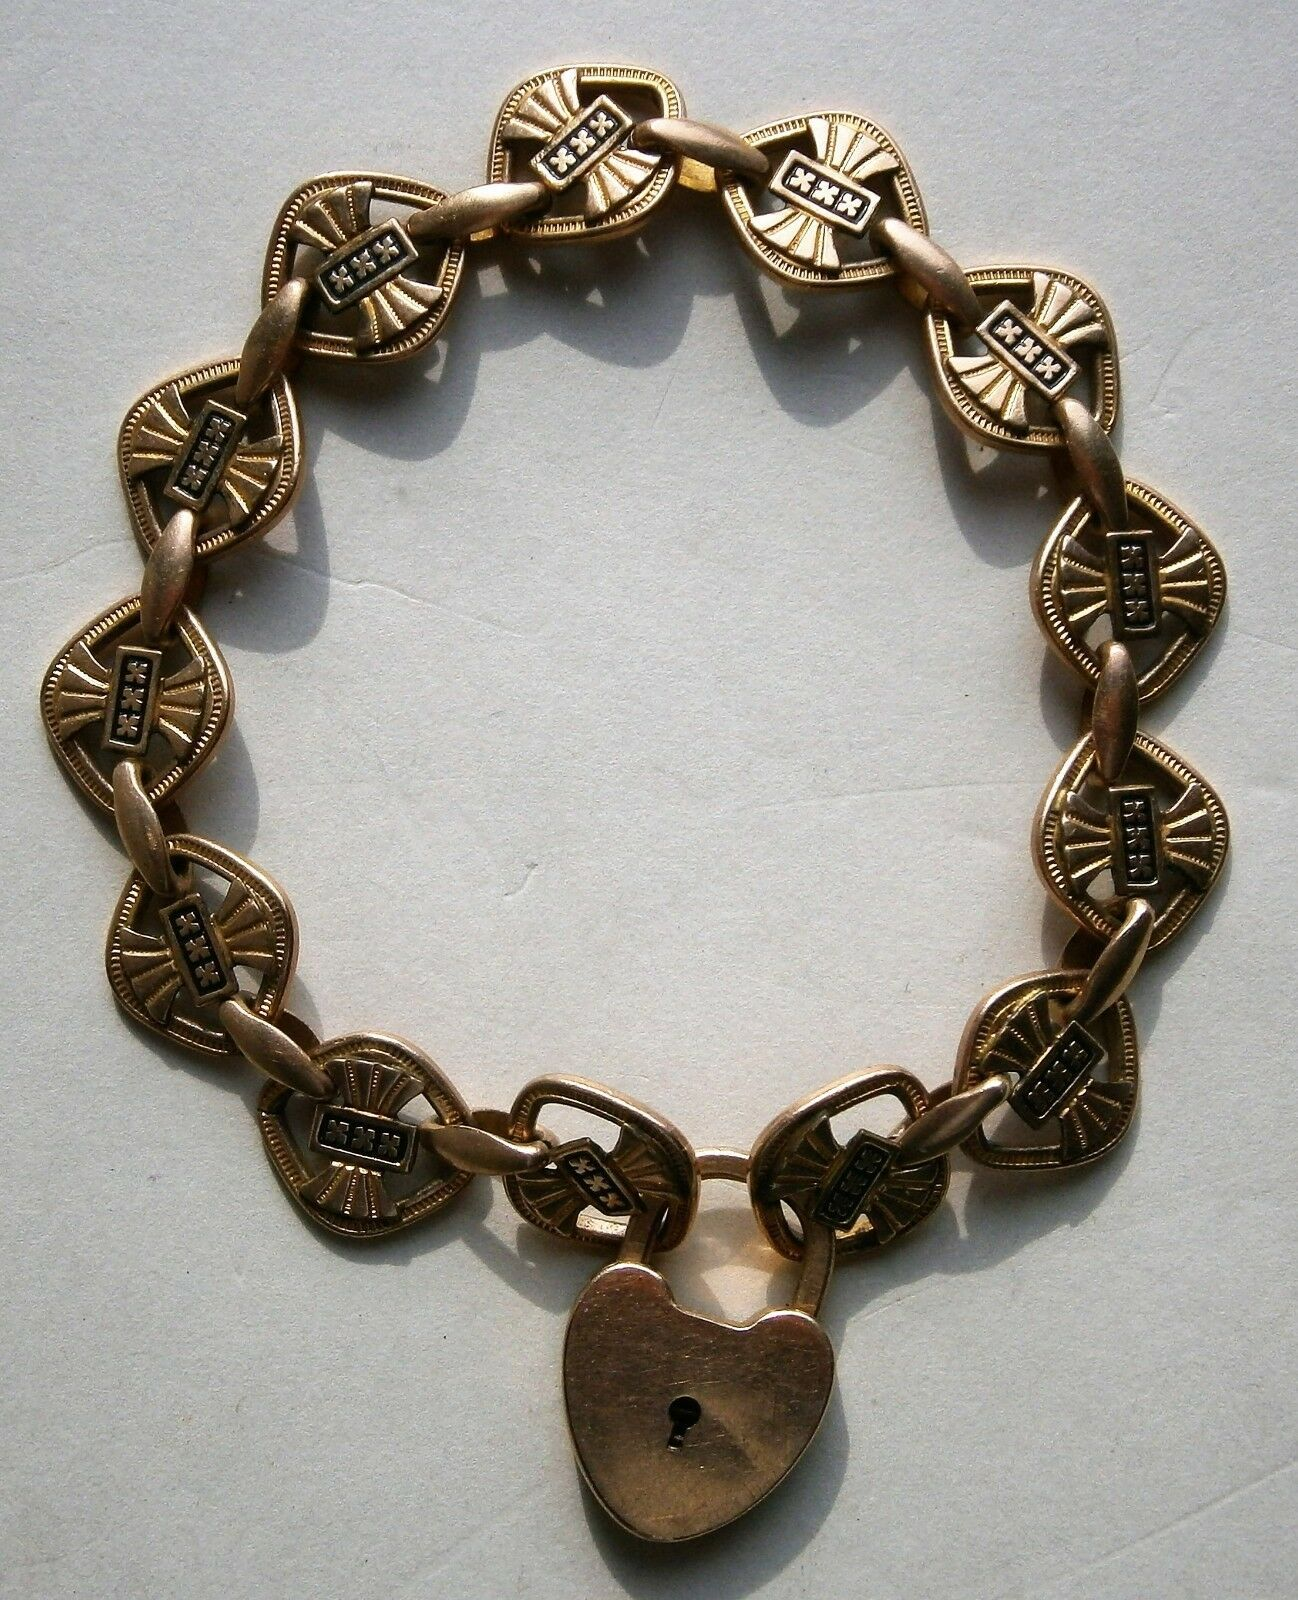 Gold Filled Bracelet with 10K Yellow Gold Trick Lock from the early 1900's